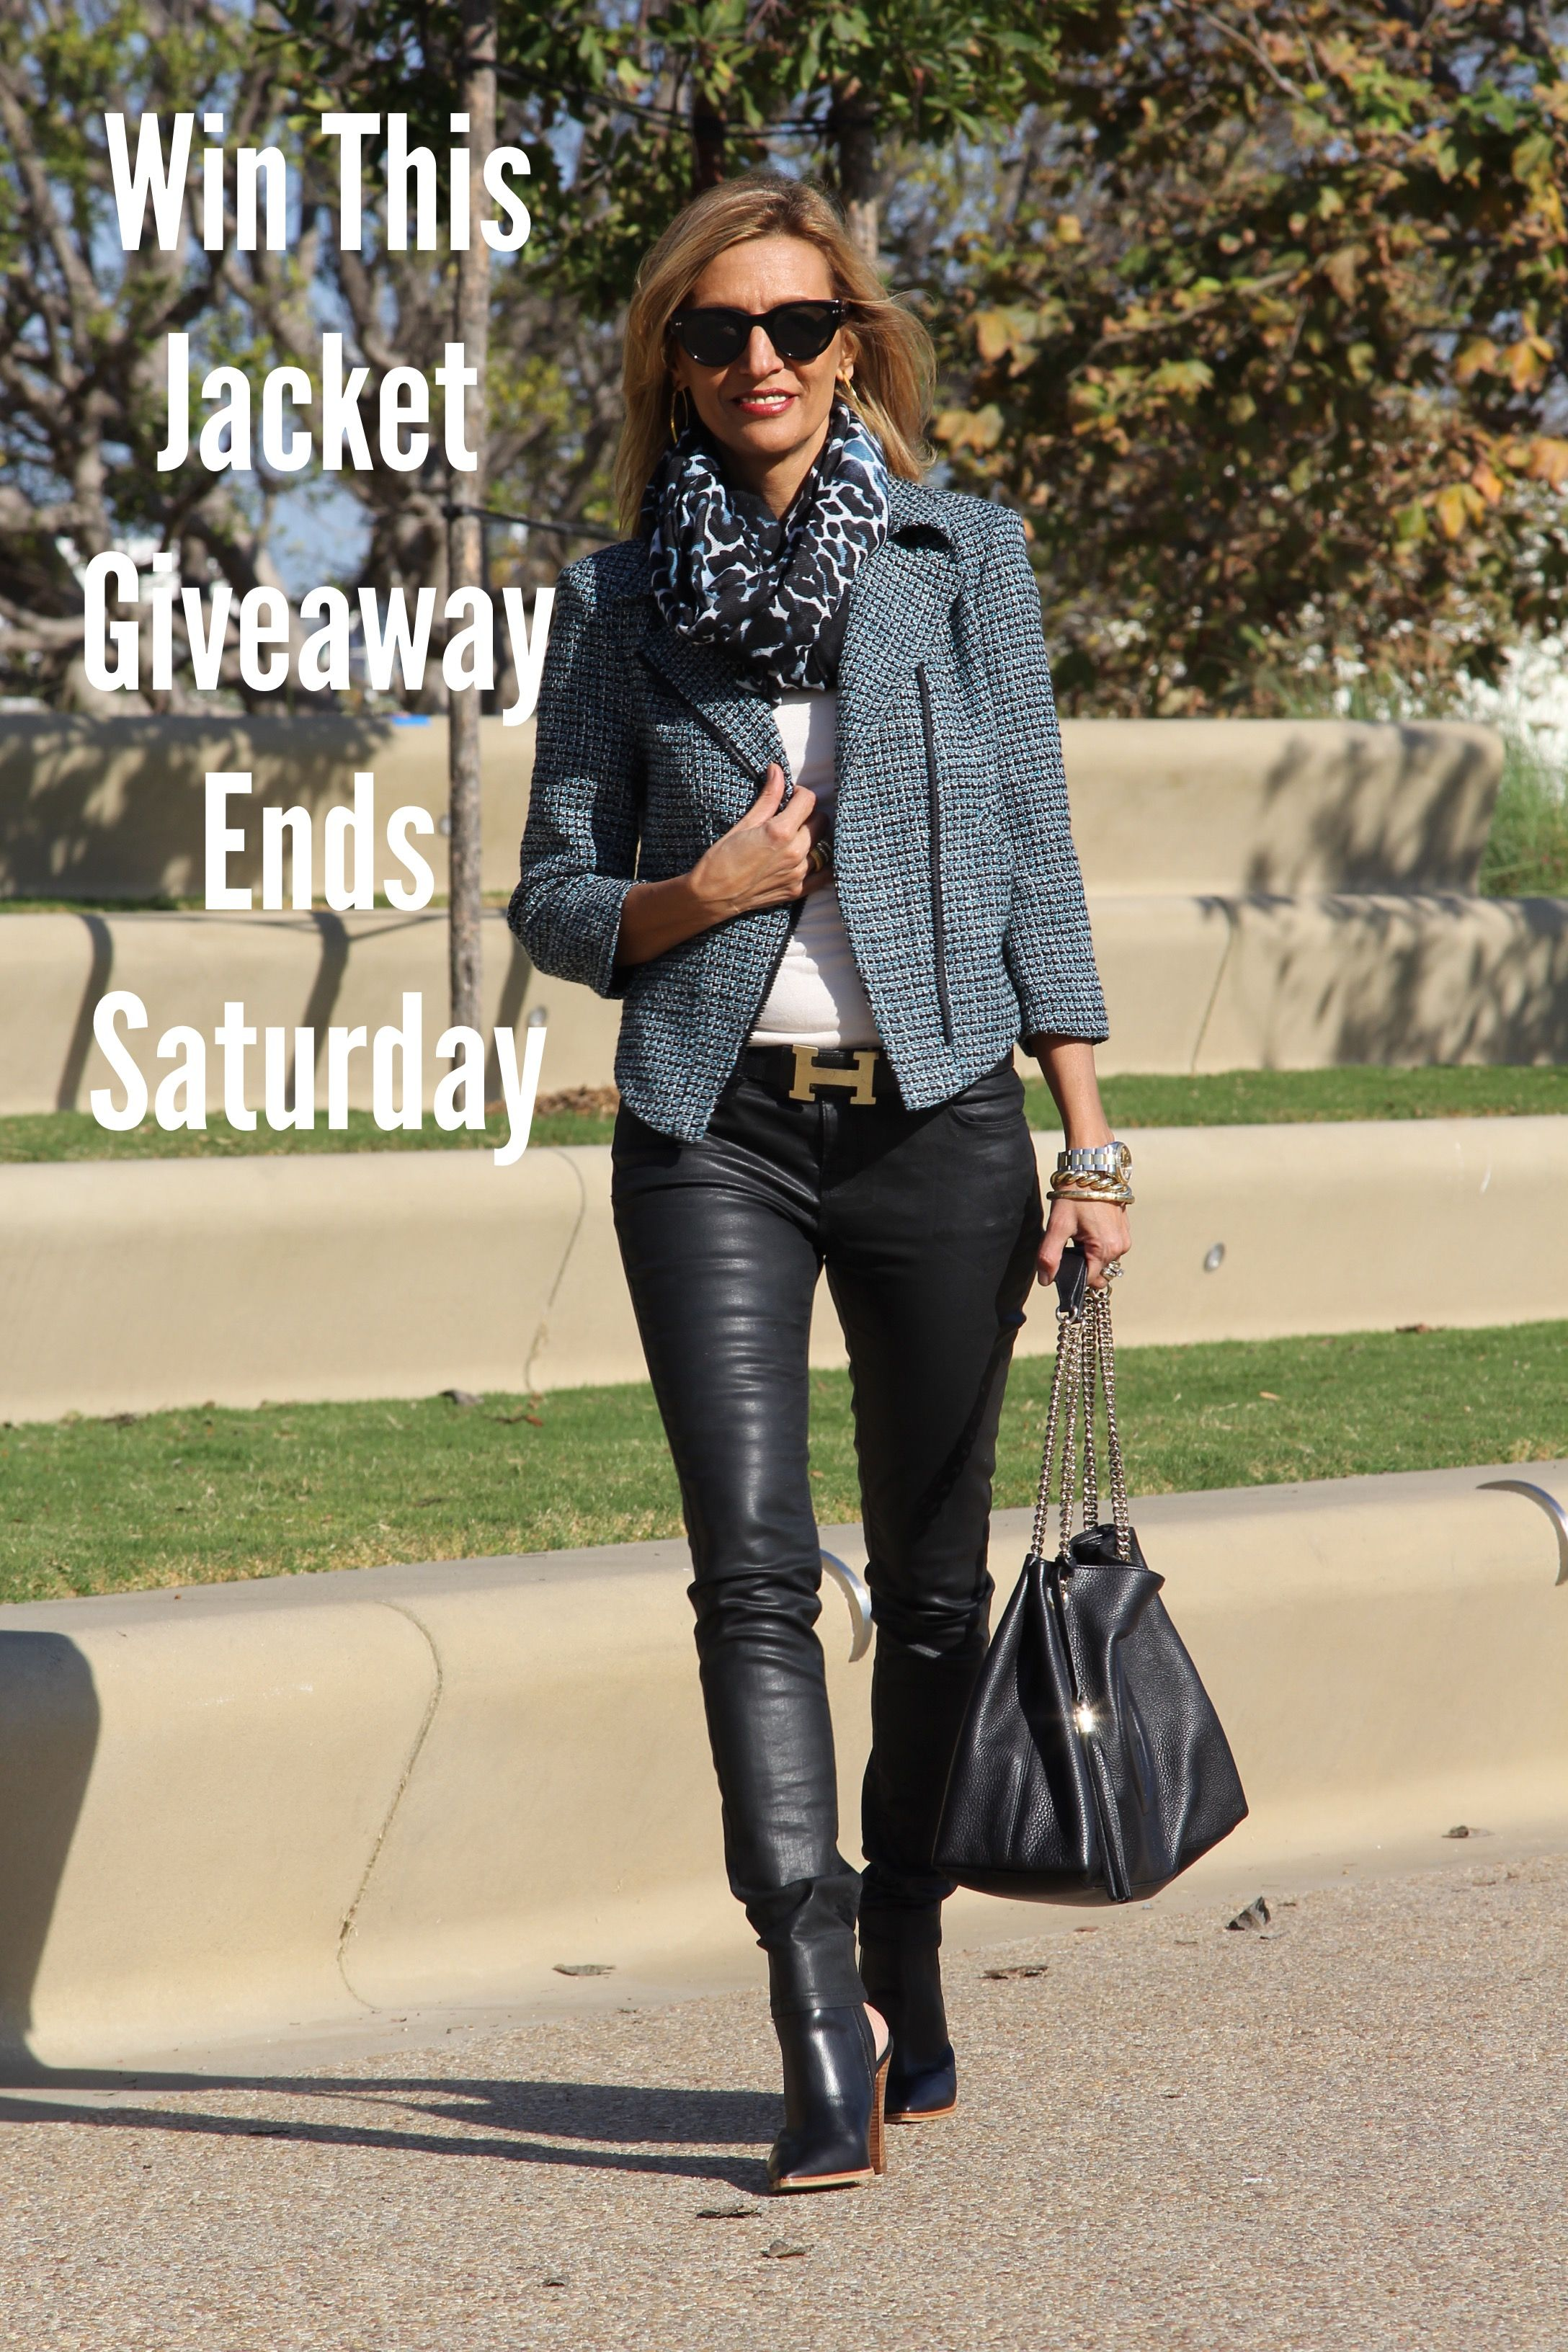 Don't forget to enter our Giveaway on our Monterey boucle jacket which ends this Saturday 1/31/2015 you can enter here http://www.jacketsociety.com/win-a-jacket-society-womens-boucle-moto-jacket/